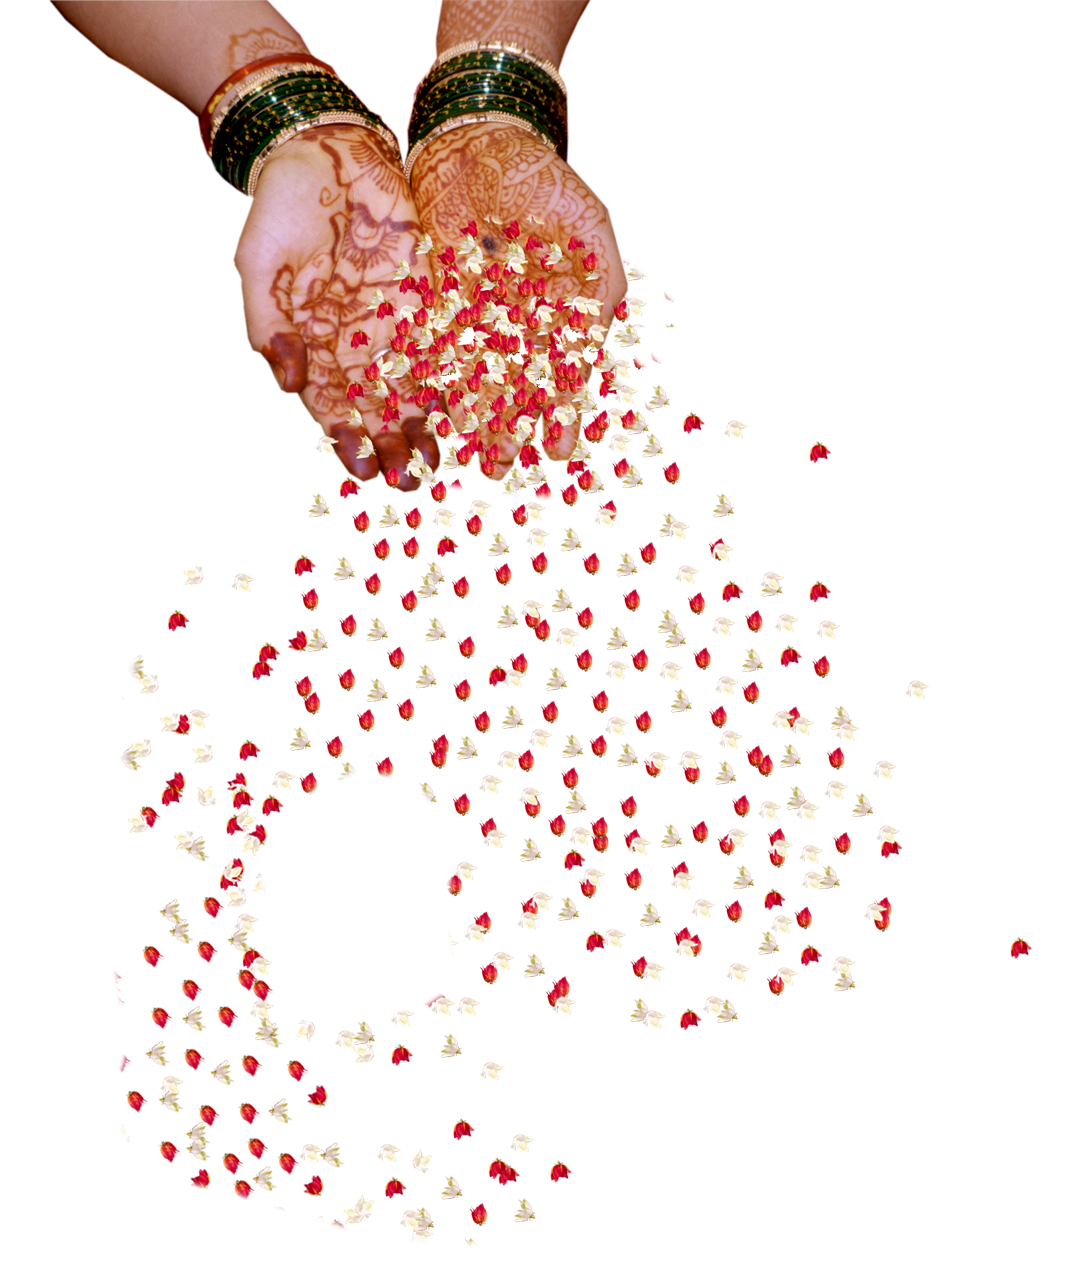 Falling flowers png. Indian wedding hand peoplepng